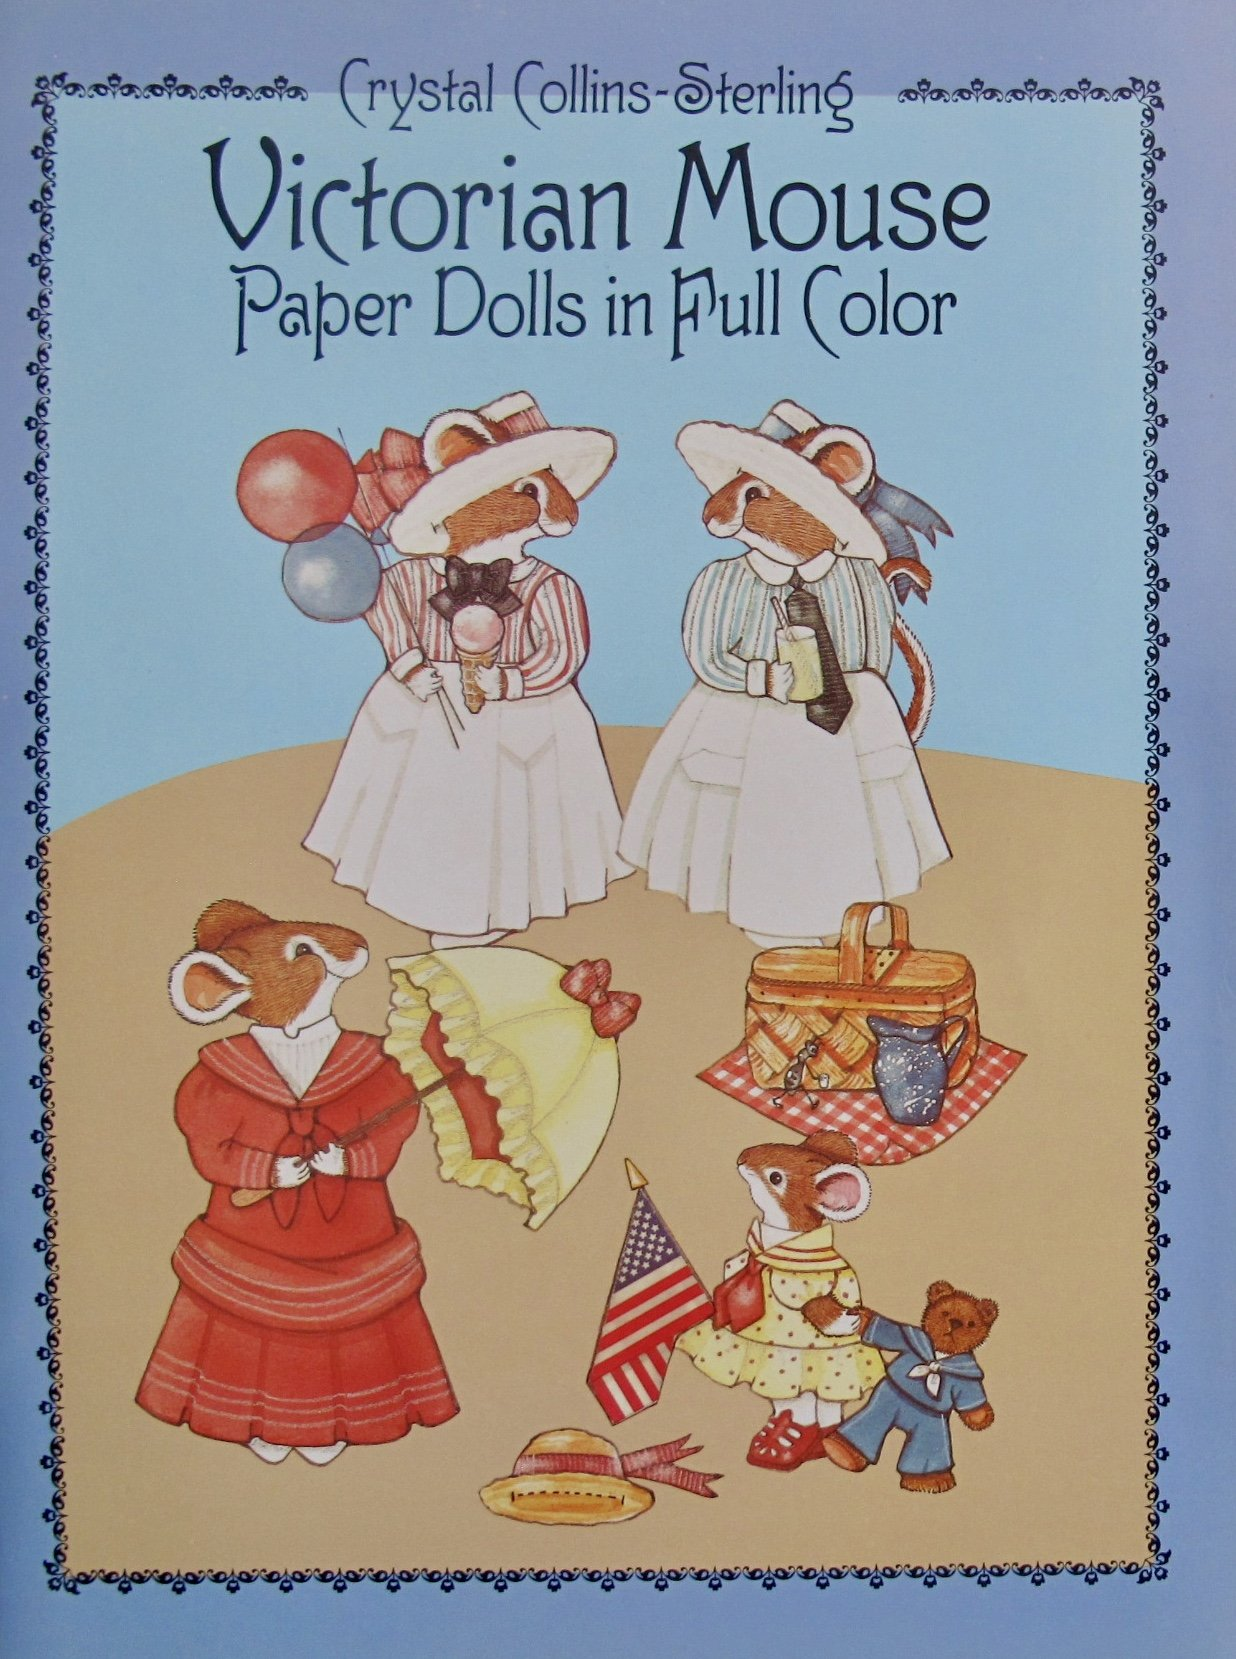 Dover VICTORIAN MOUSE PAPER DOLLS Book (UNCUT) in Full COLOR w 4 Card Stock DOLLS & COSTUMES & Accessories by Crystal Collins-Sterling (1986)